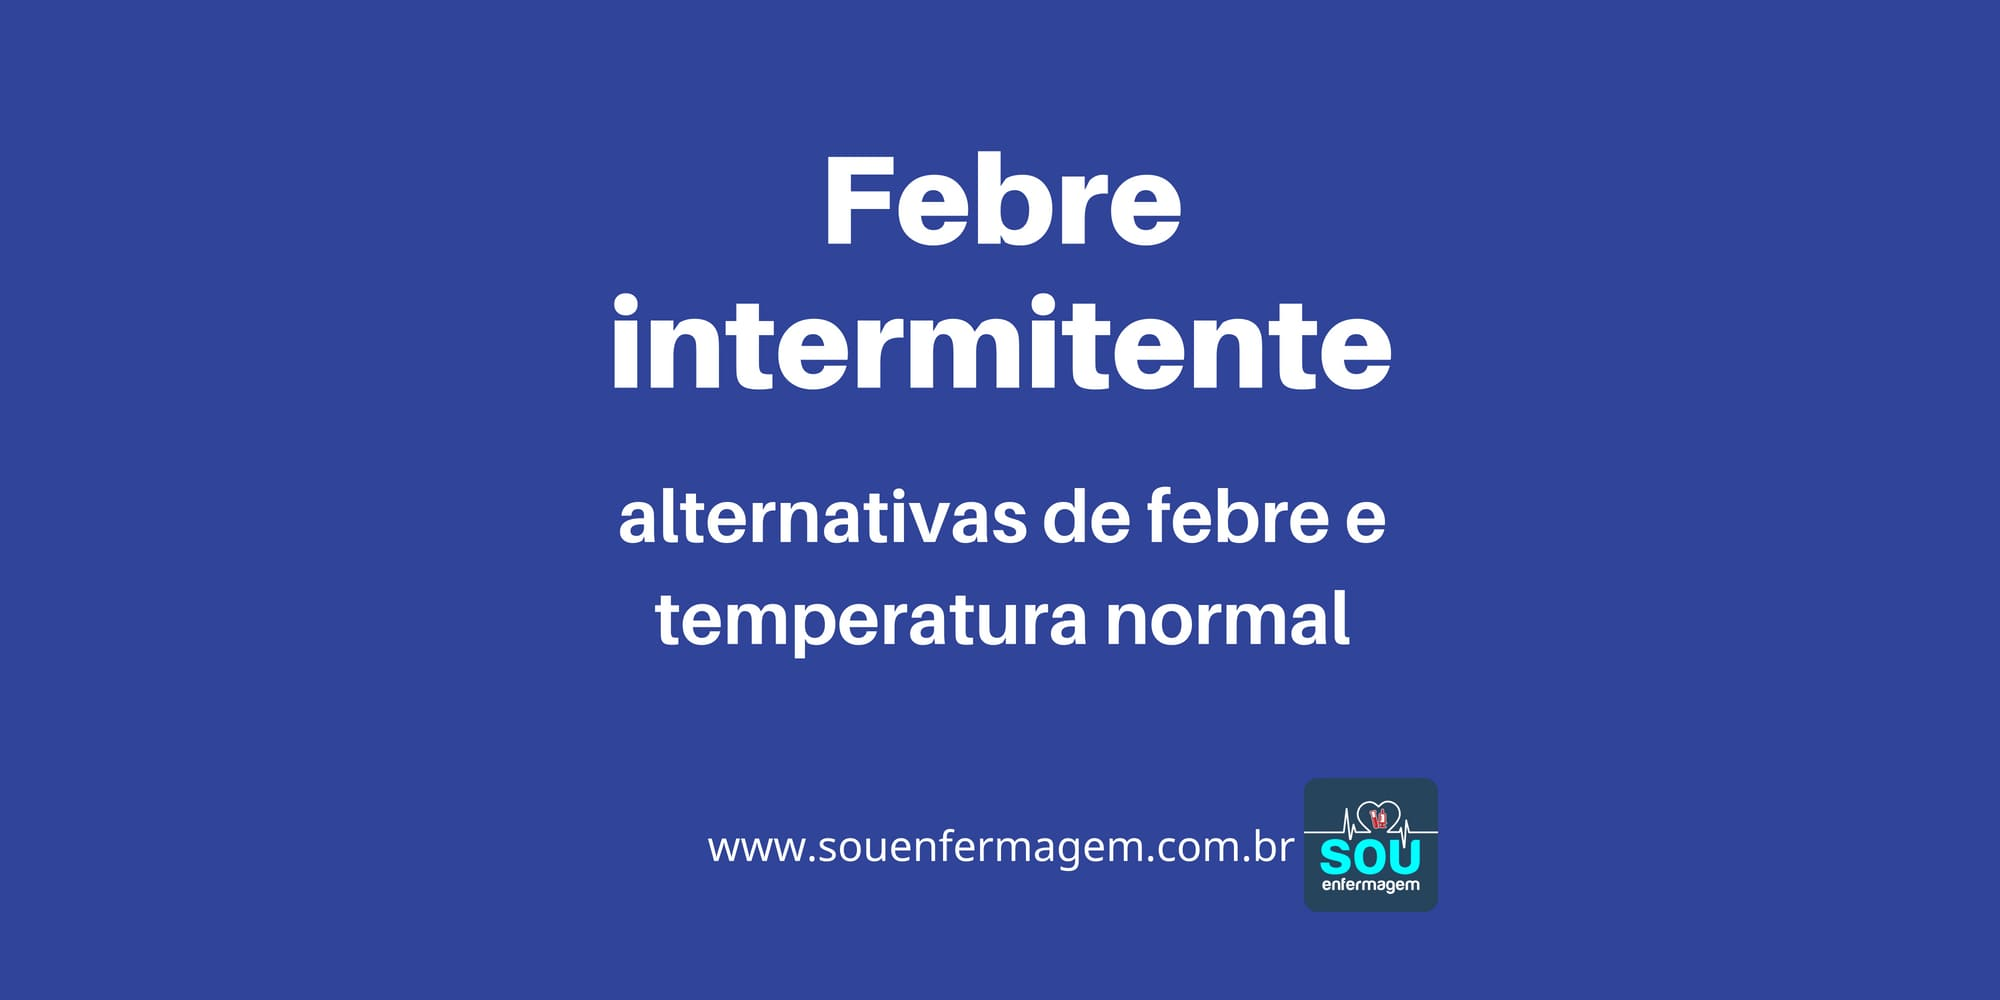 Febre intermitente.jpg